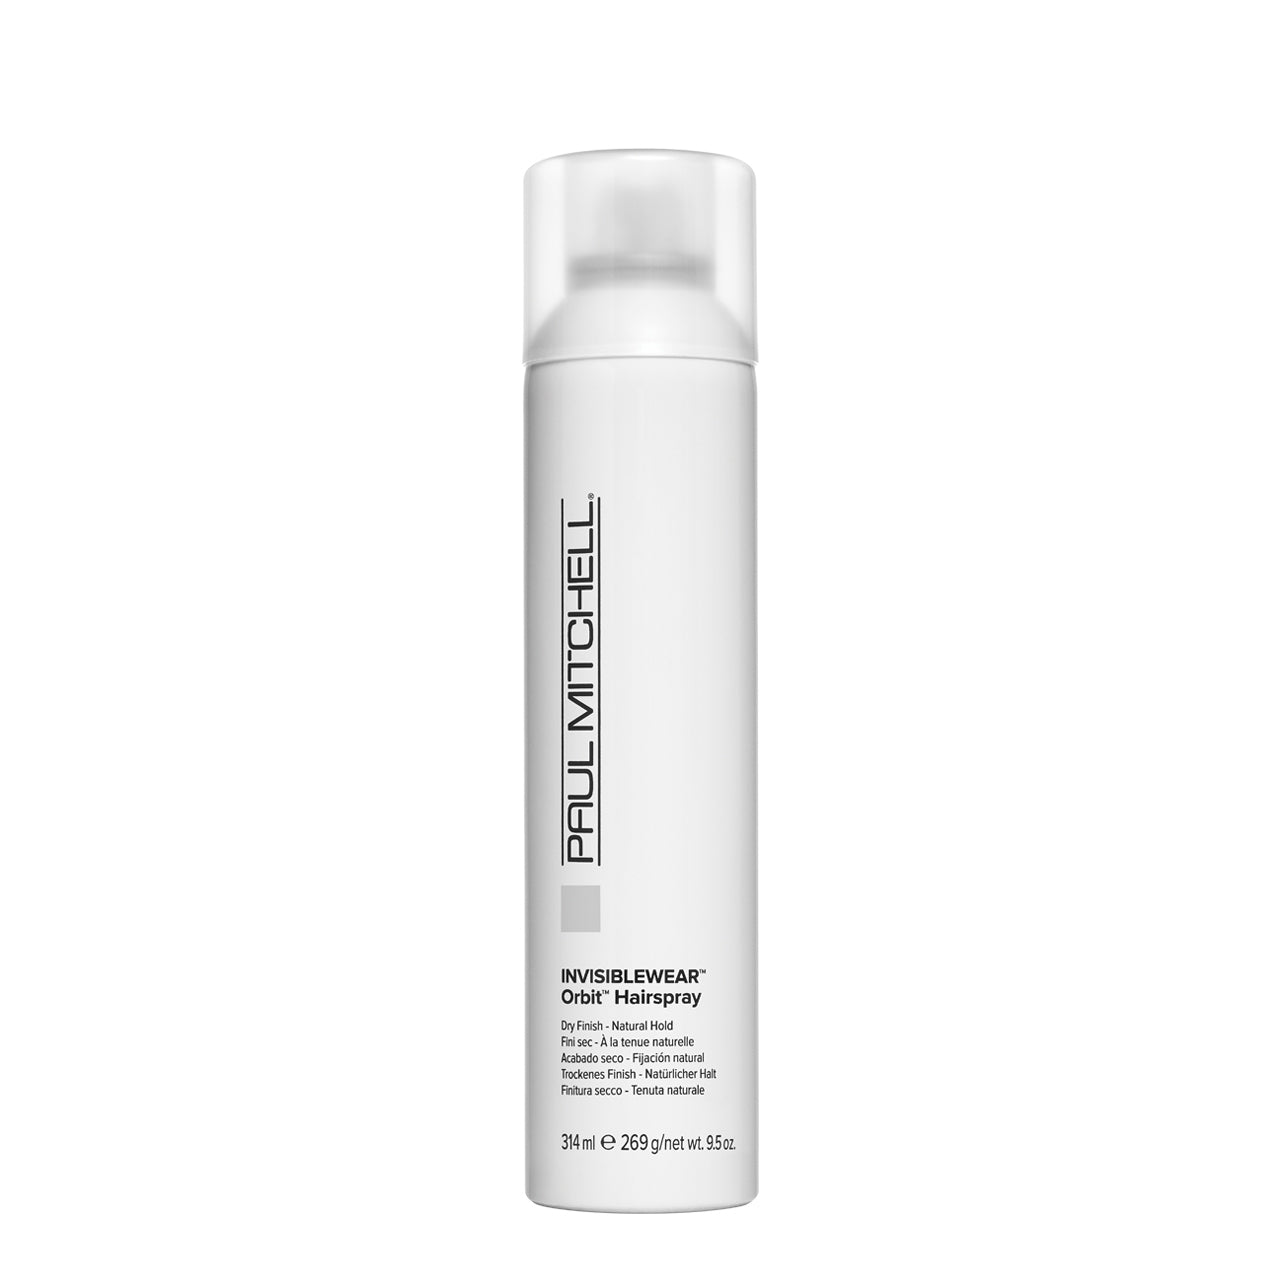 Paul Mitchell Invisiblewear Orbit Hairspray 314ml